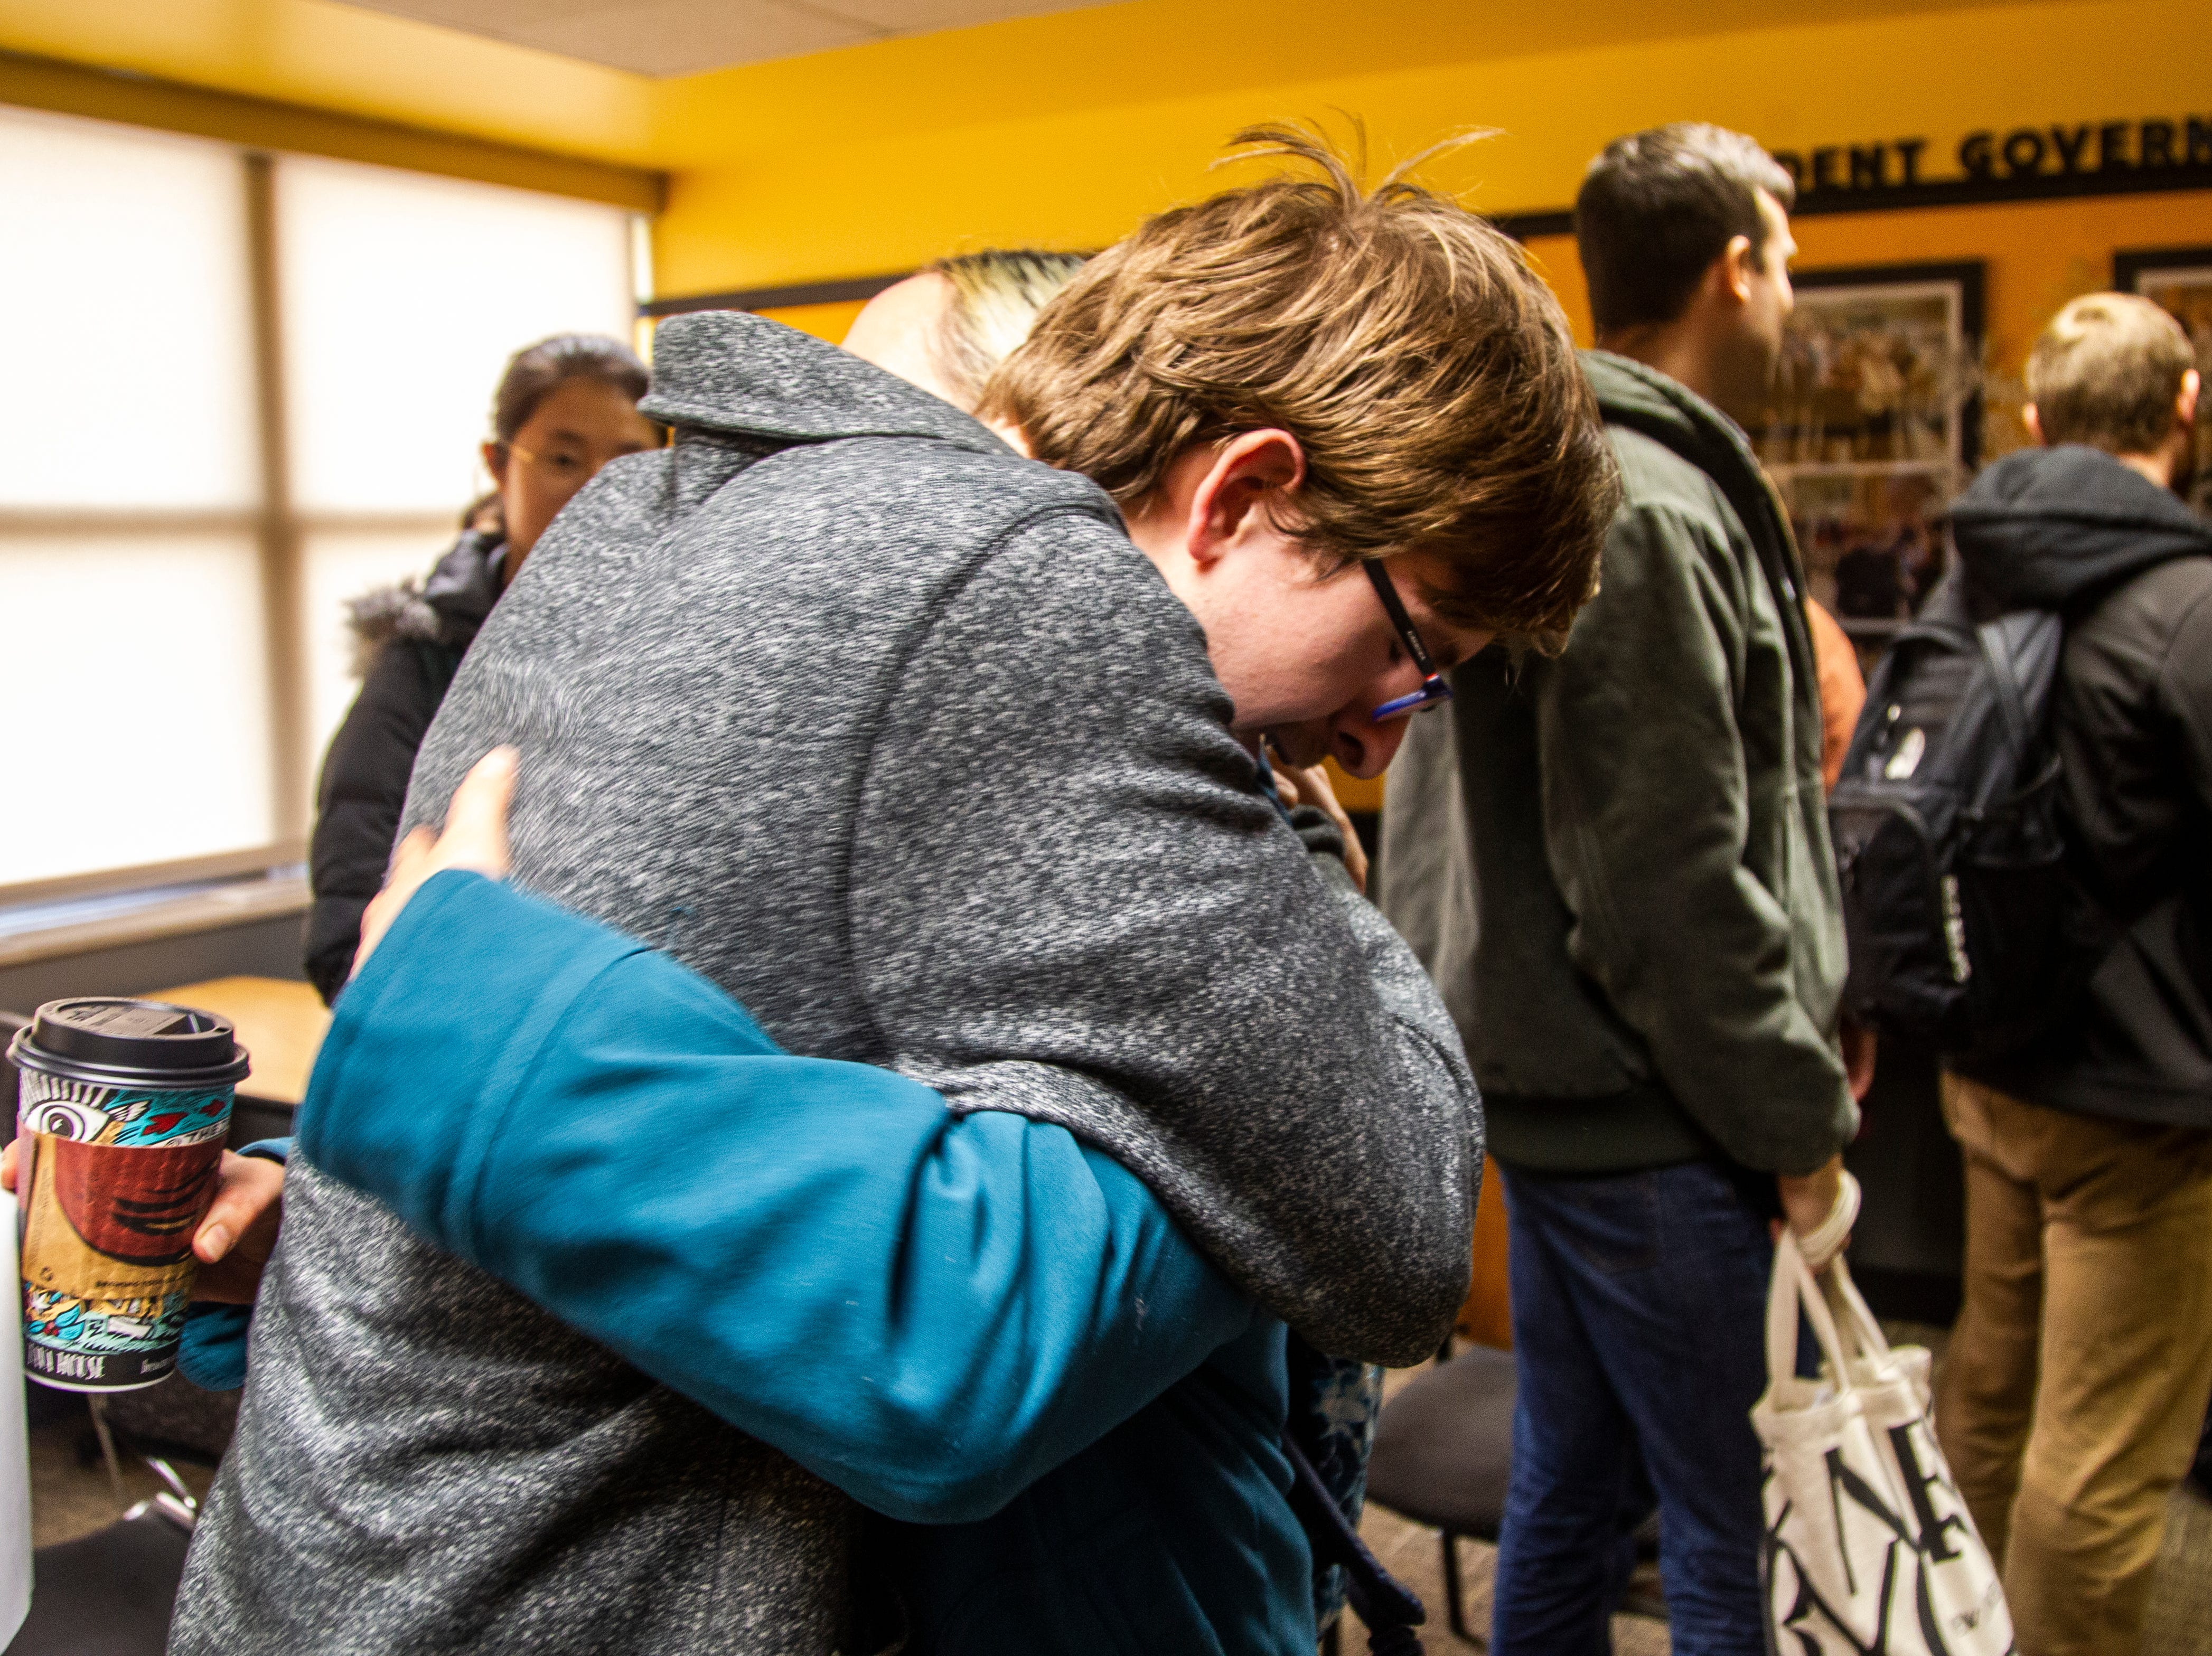 Erik Gustafson, a Campaign to Organize Graduate Students steward, is embraced by a friend after a contract proposal from the Iowa Board of Regents on Wednesday, Dec. 12, 2018, at the Iowa Memorial Union in Iowa City.